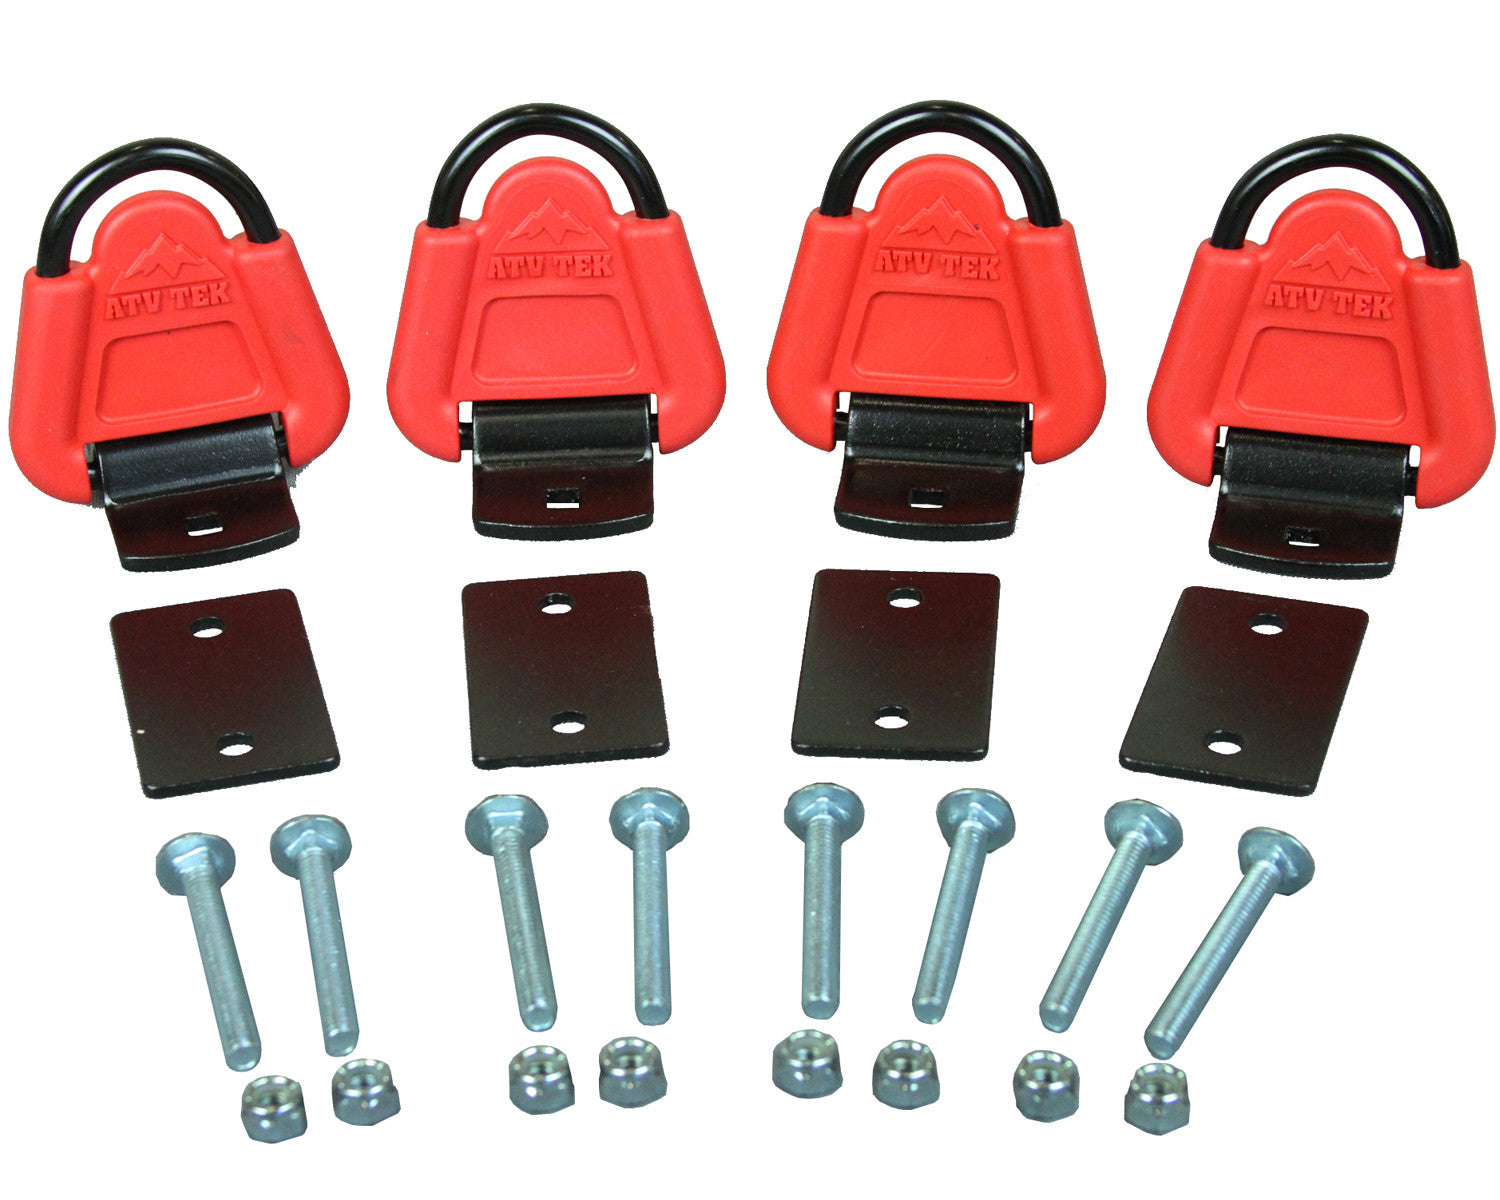 Straplock™ ATV/UTV Tie-Down Anchor Kit - 4-pack (#atvtda1)